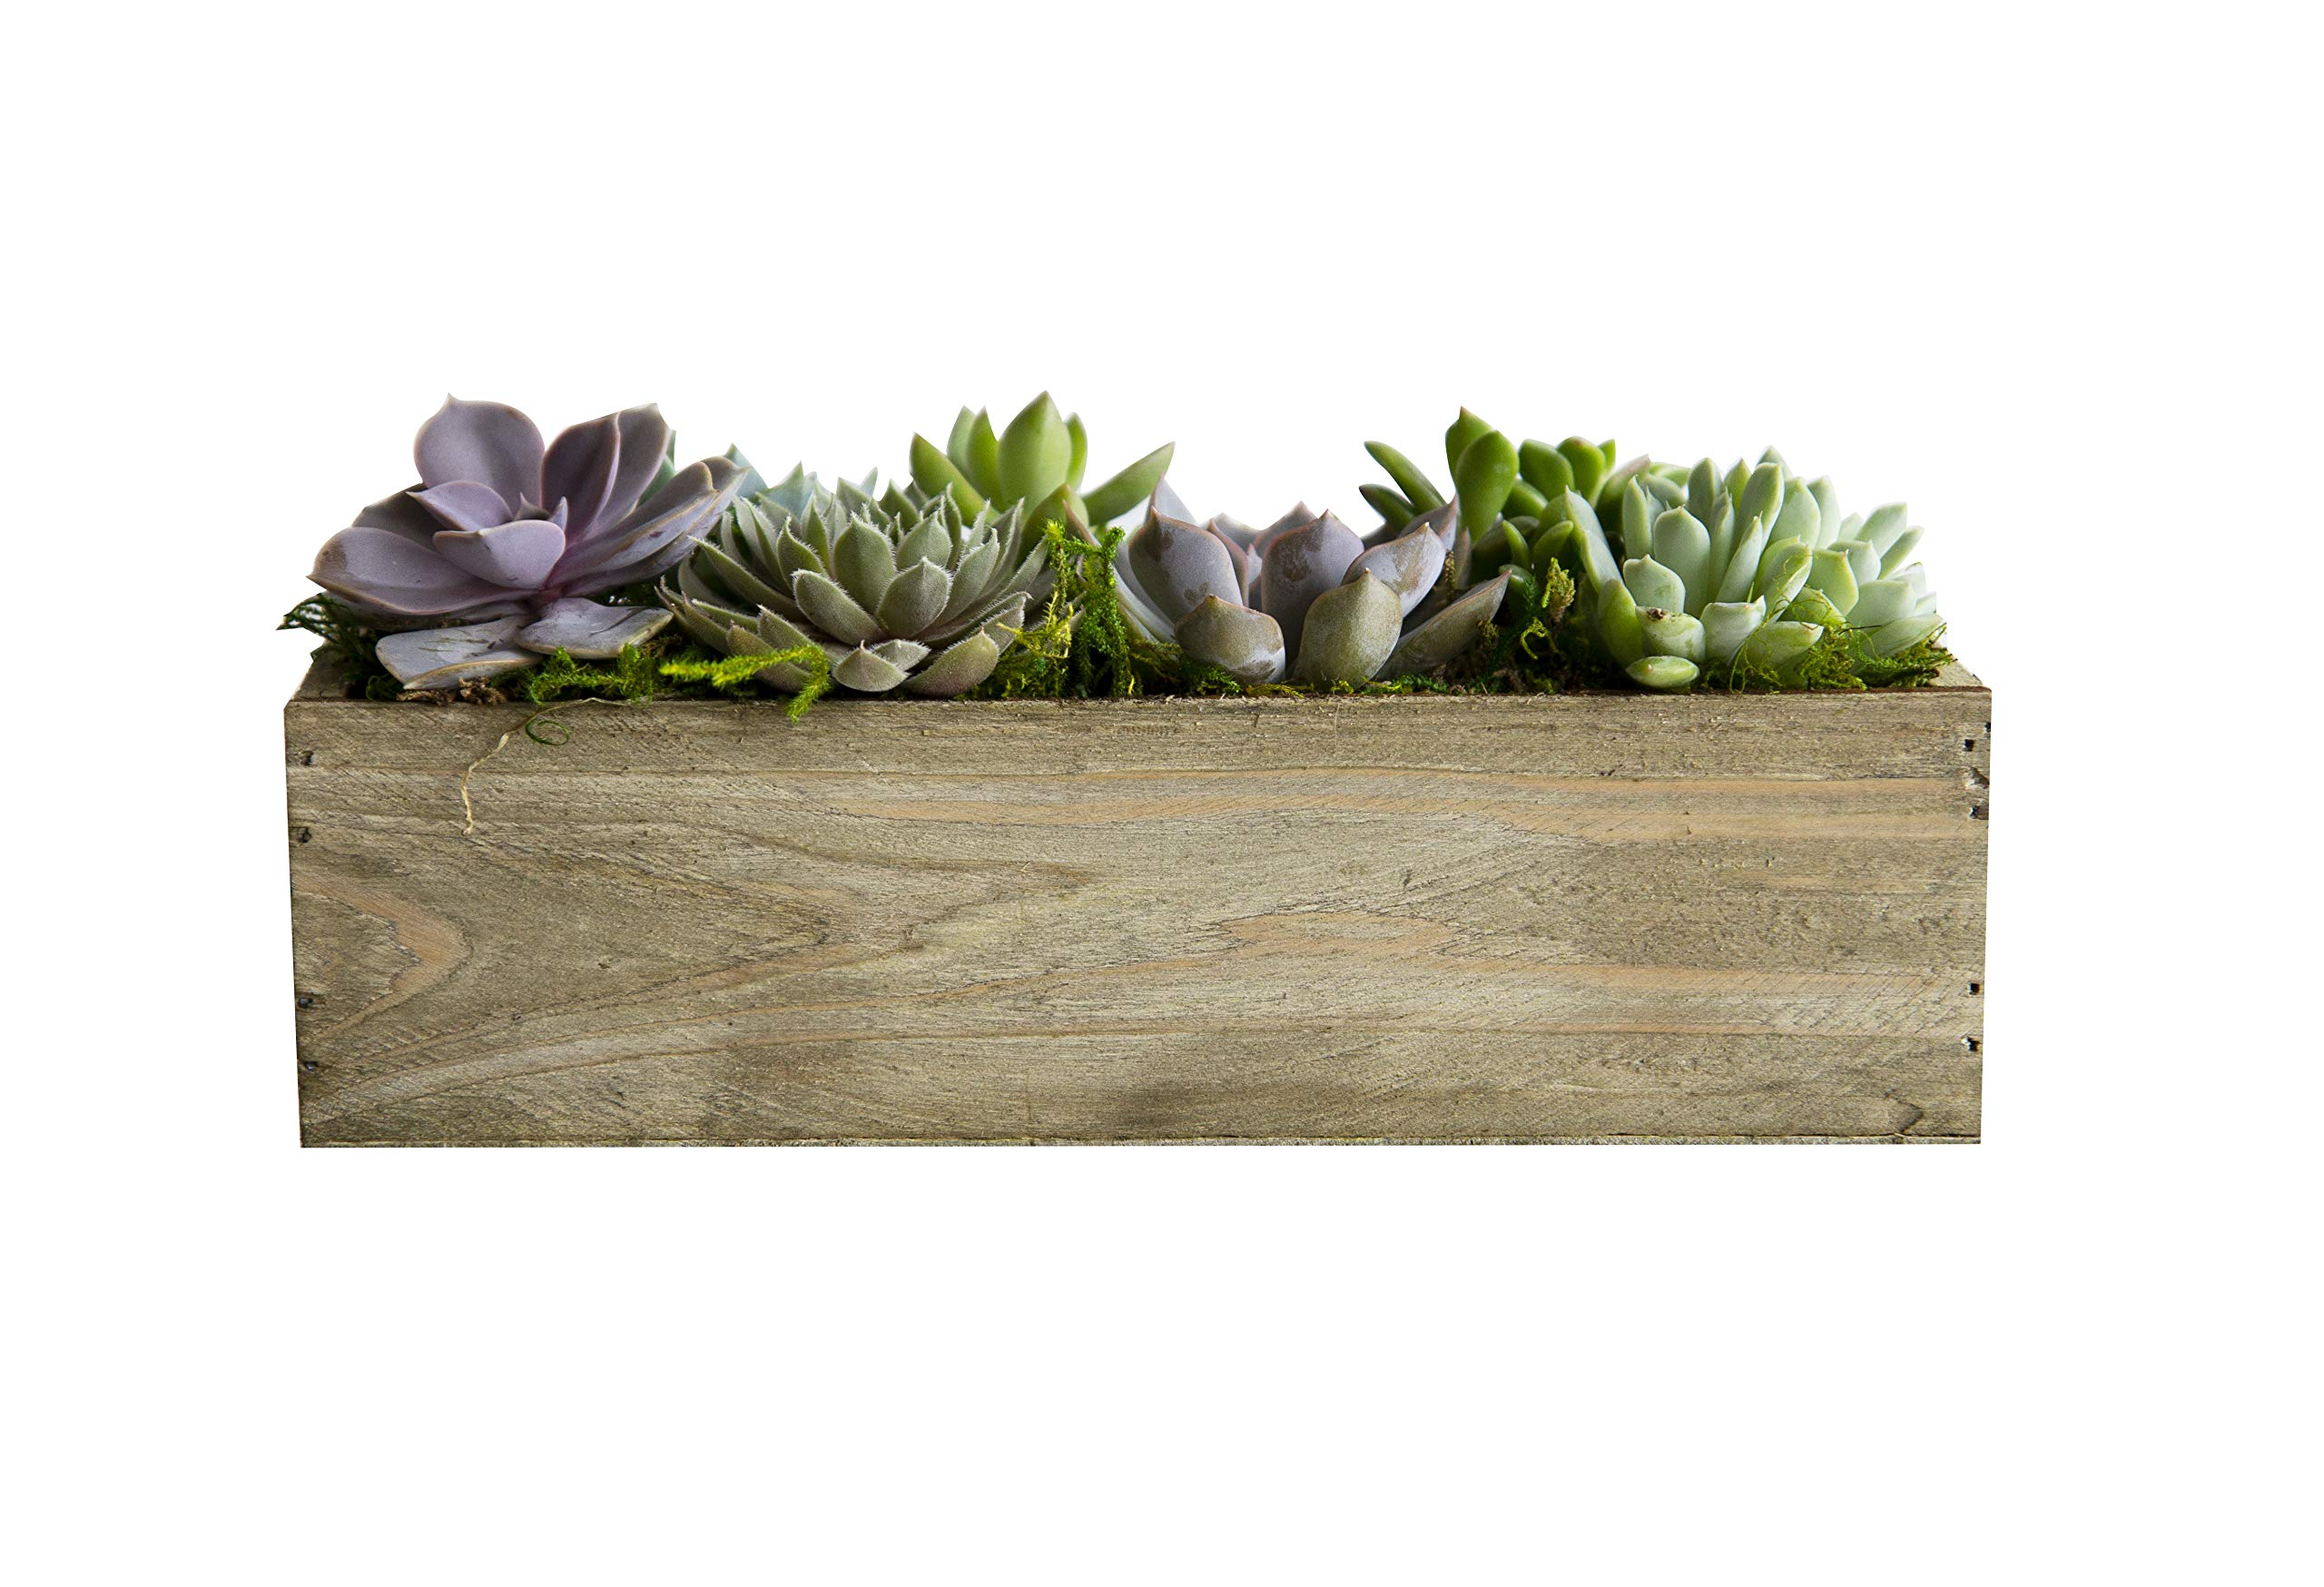 Hallmark Flowers Succulent Garden In 10-Inch Wood Trough by Hallmark Flowers